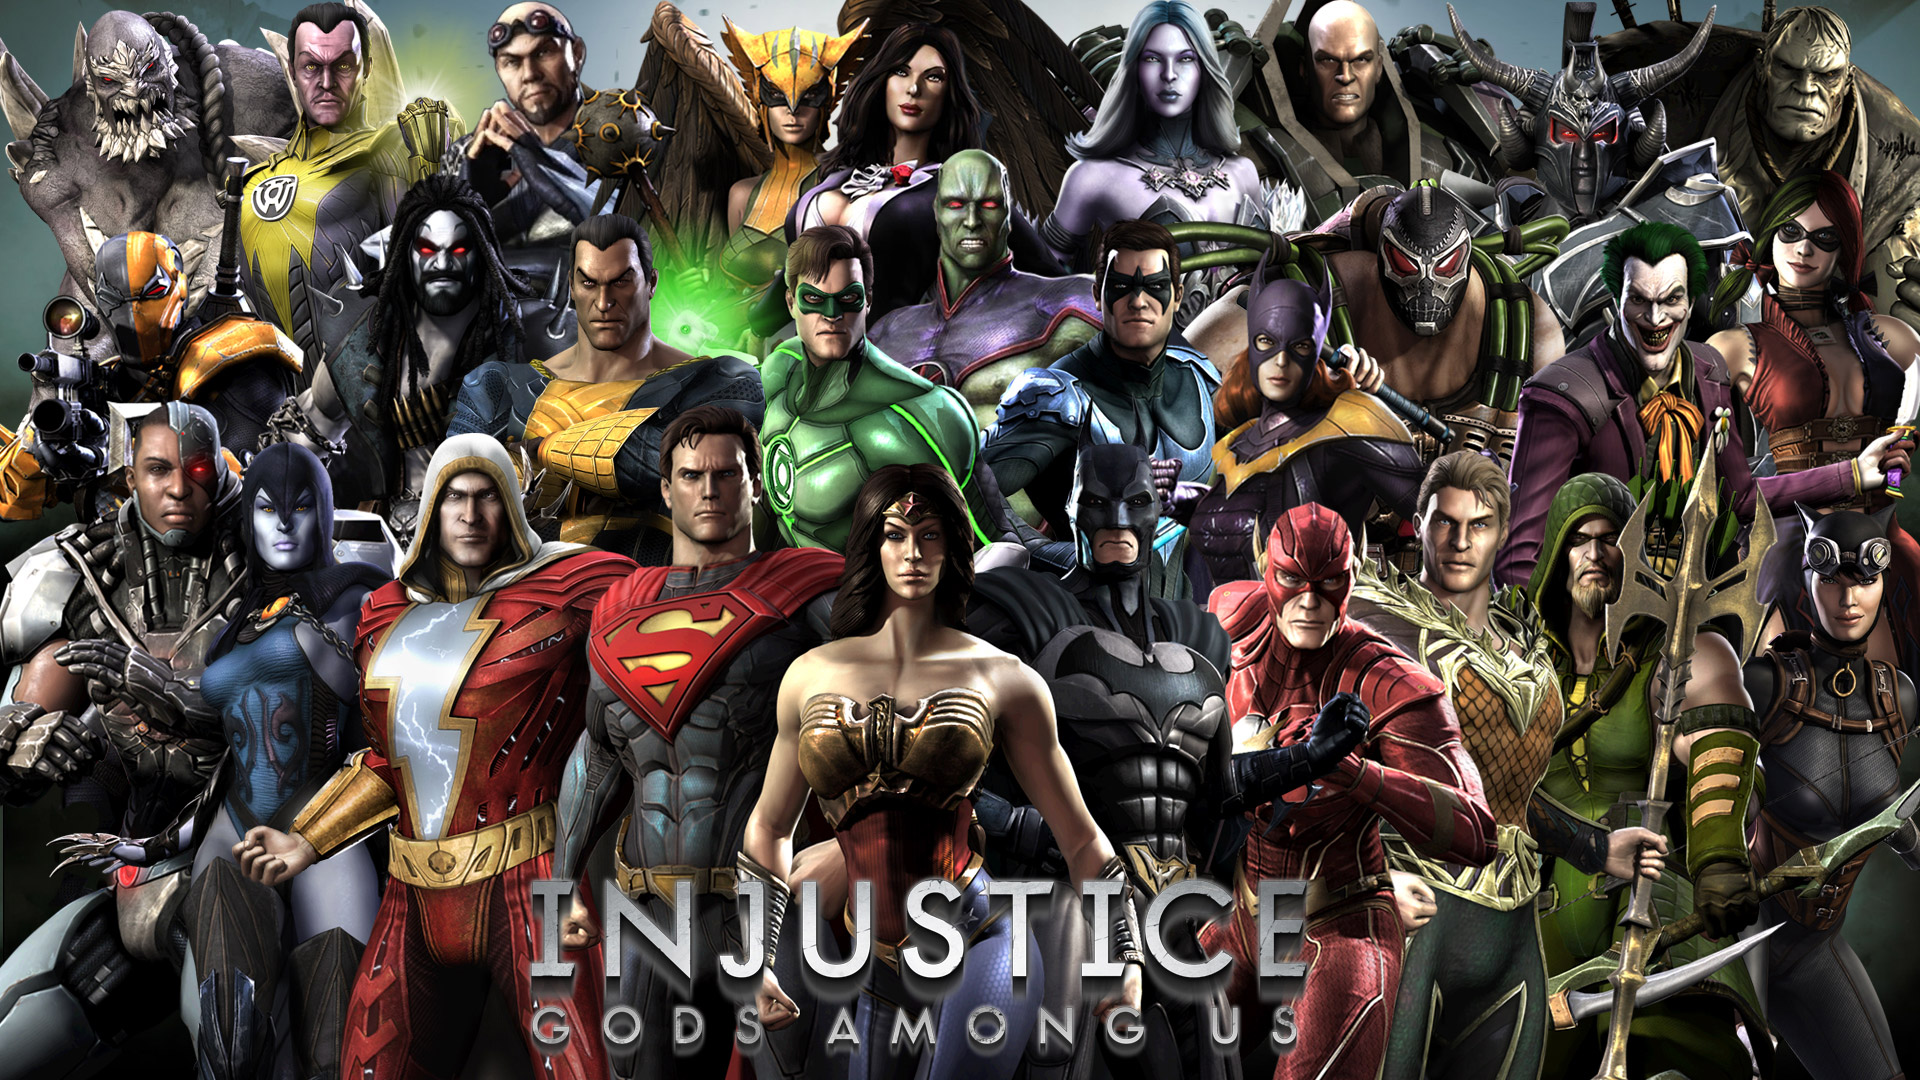 Injustice gods among us wallpaper 22 voltagebd